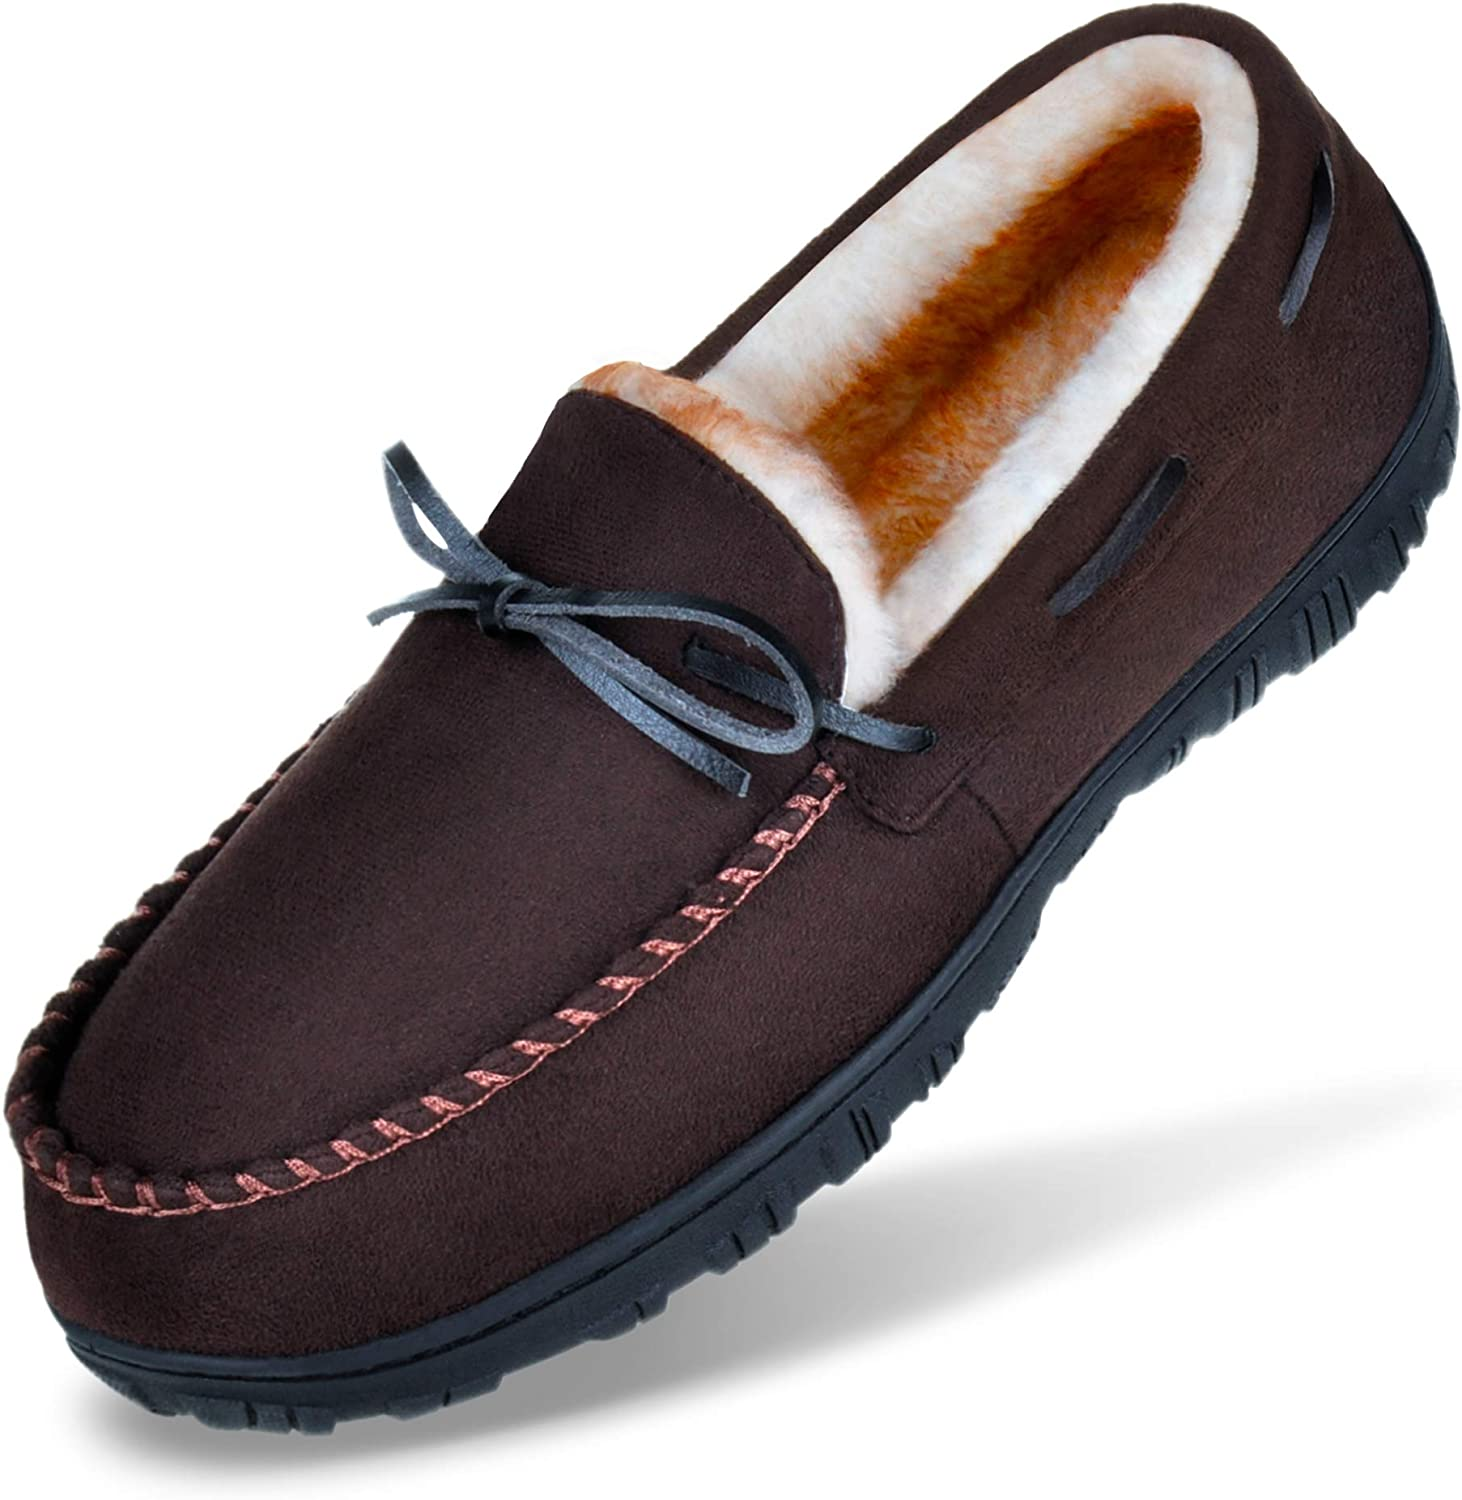 MIXIN Mens Slippers Moccasins Slippers for Men Warm House Slip on Flats Shoes with Cozy Memory Foam for Men Indoor